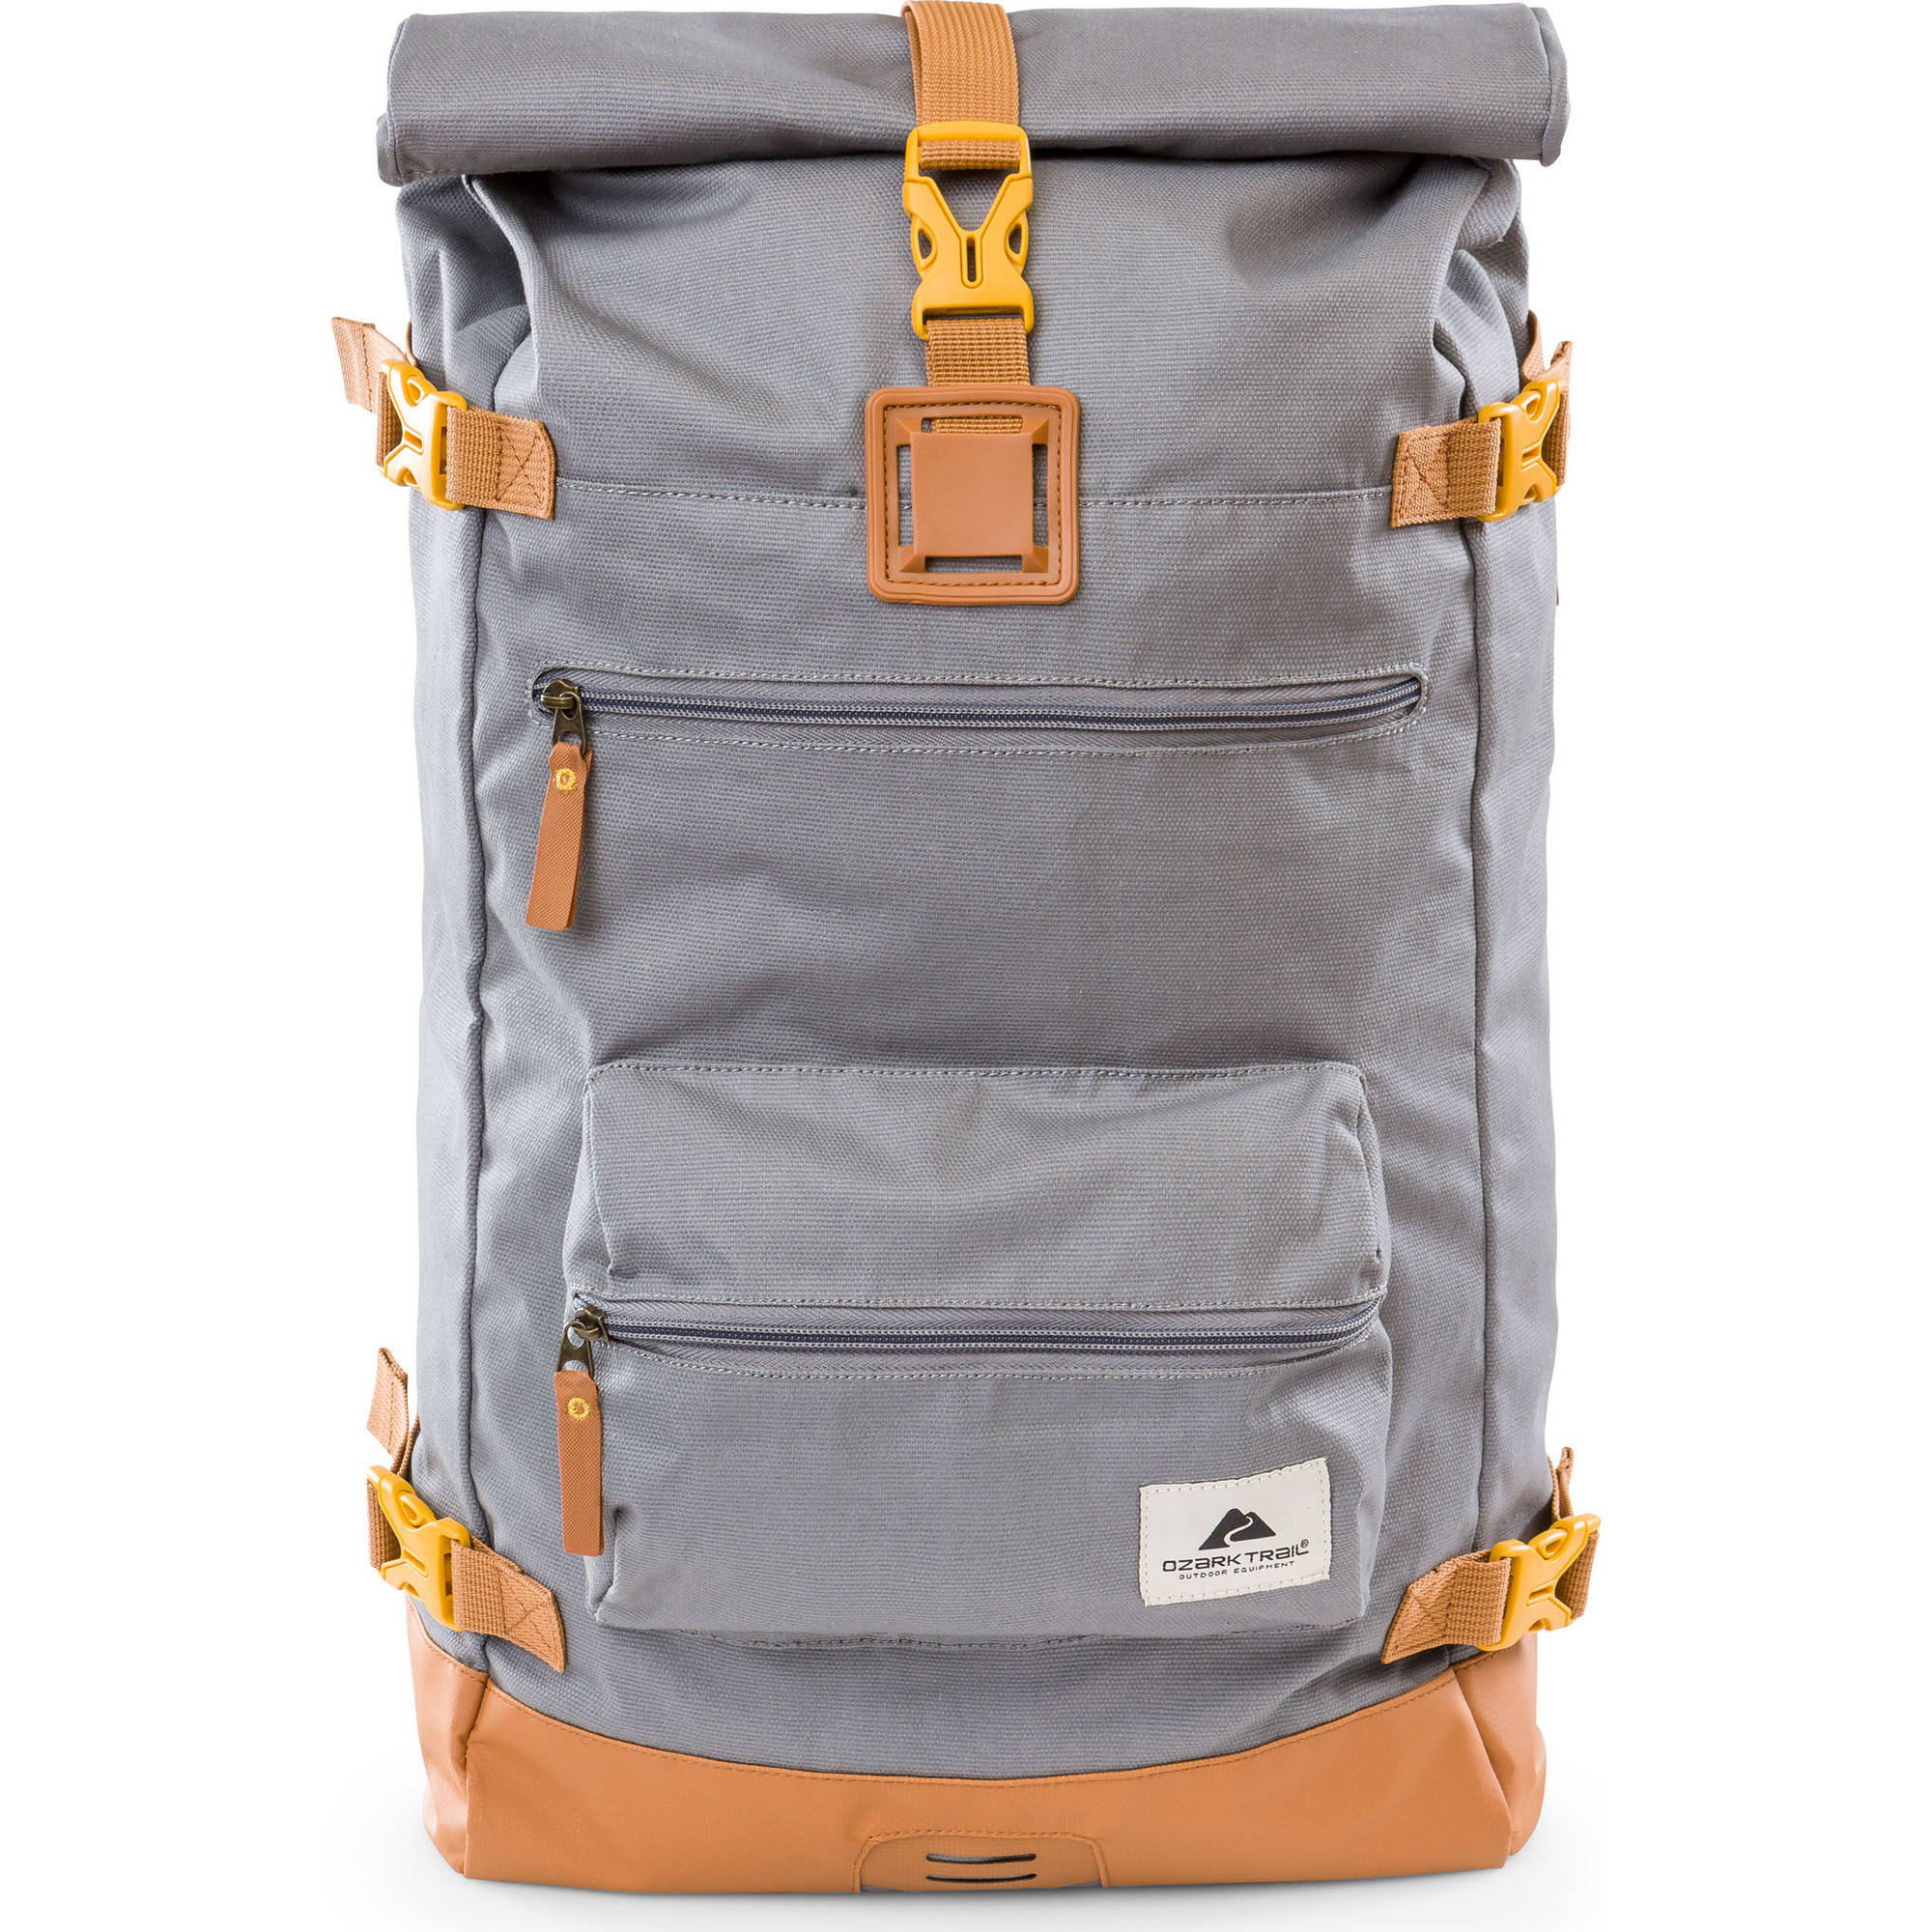 Ozark Trail 25L Roll Top Backpack